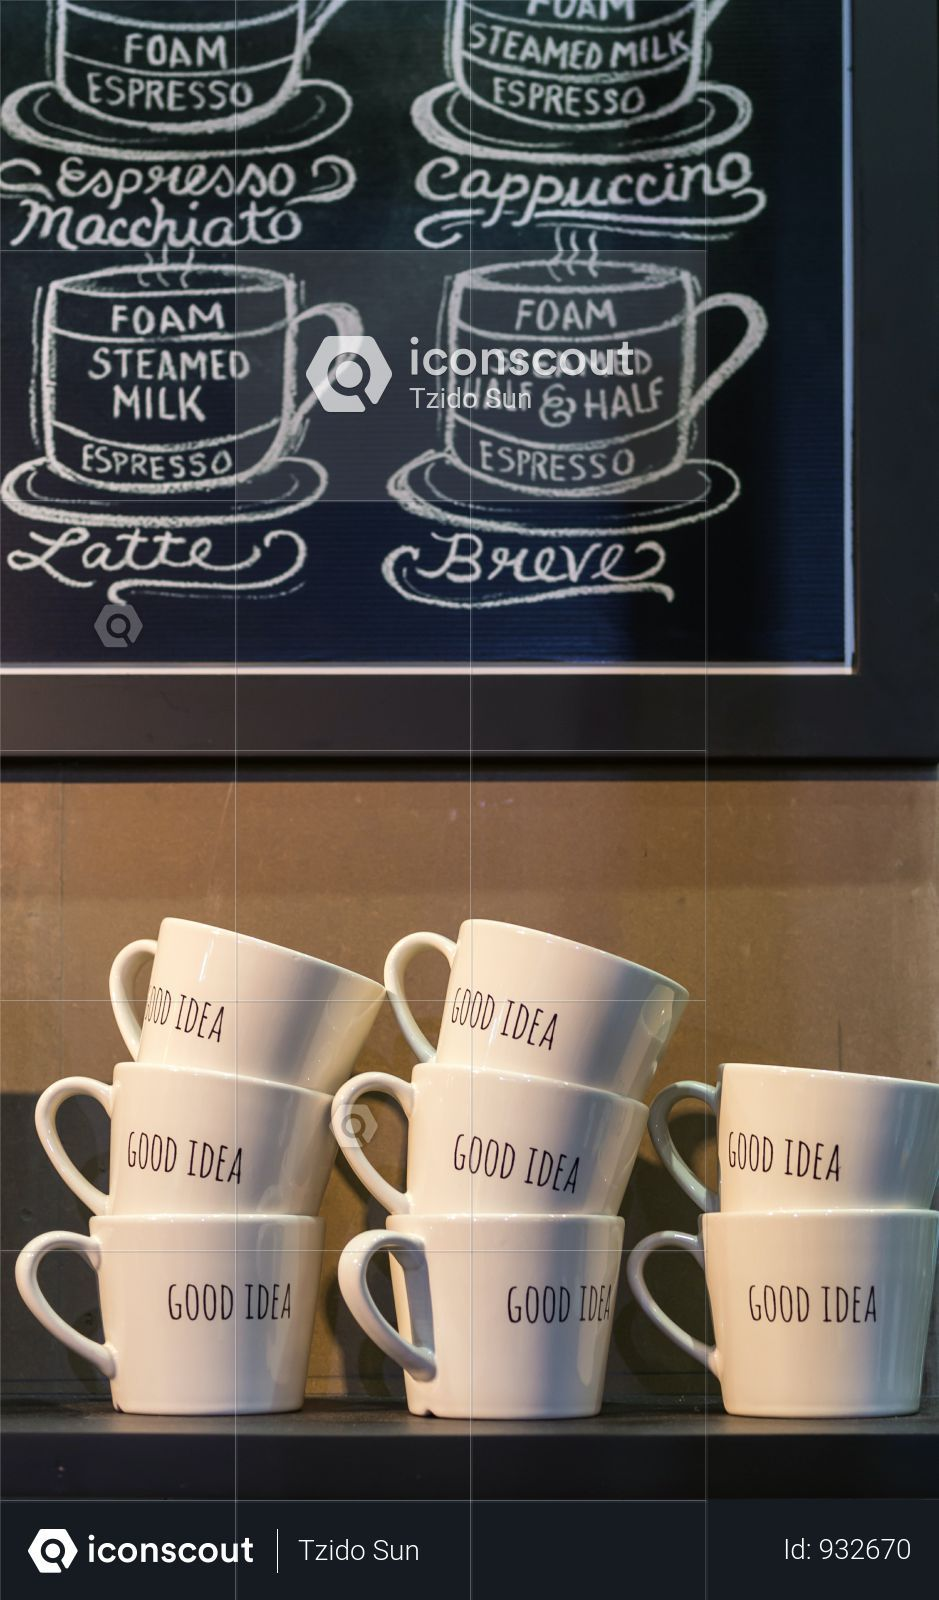 Premium Coffee Cups With Good Idea Wording On The Shelf In Coffee